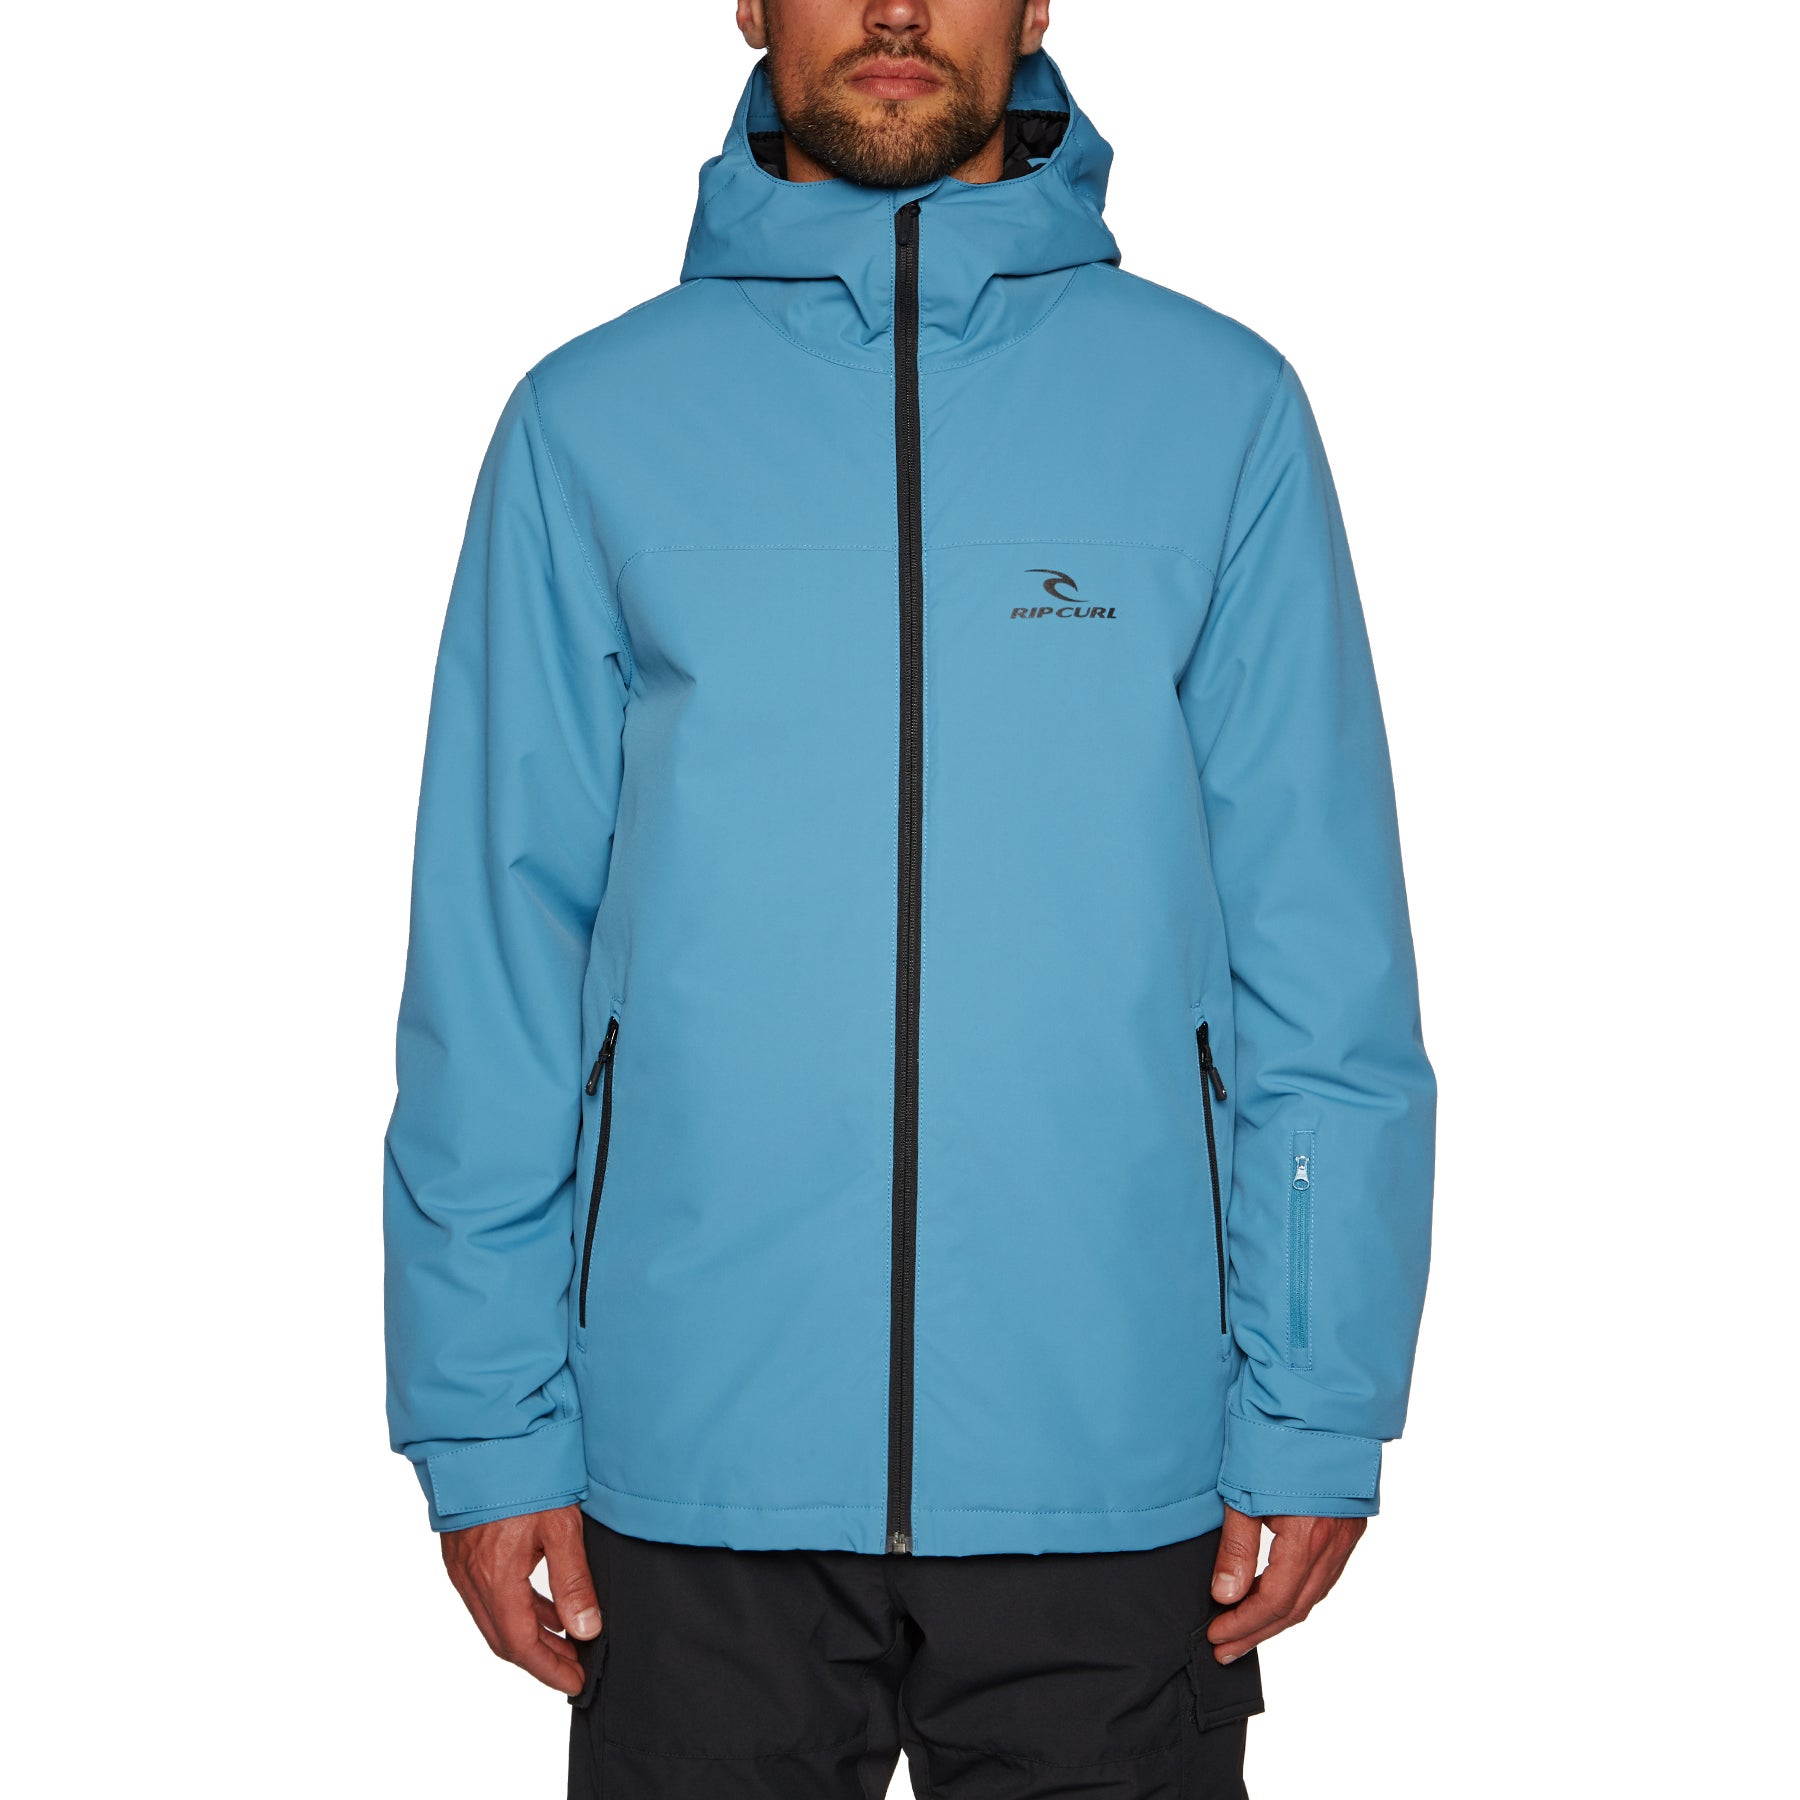 Giacca Snowboard Rip Curl Enigma - Faience